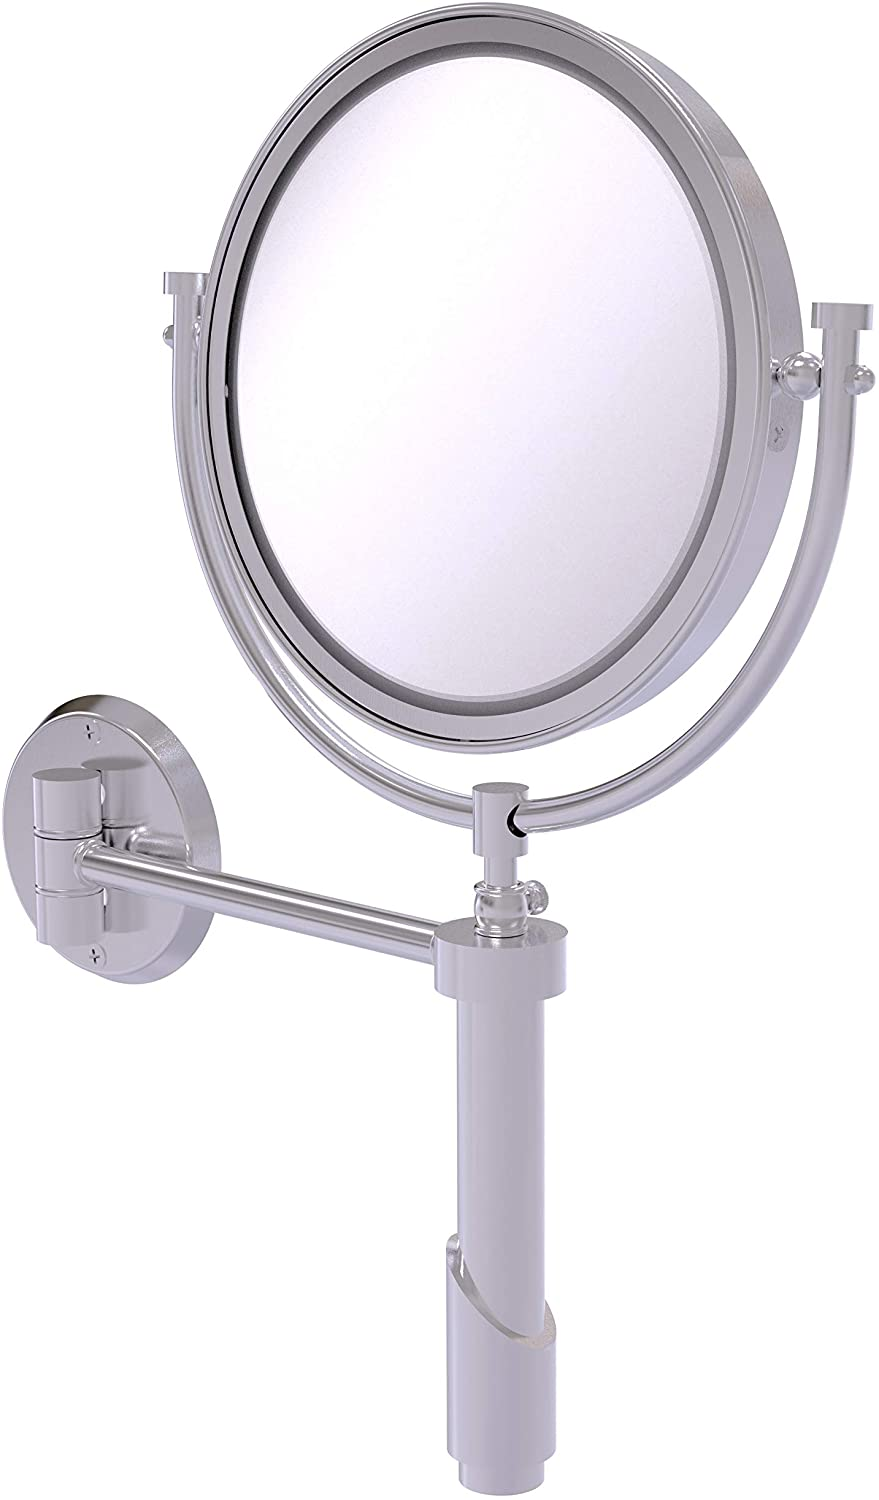 Allied Brass TRM-8/3X Tribecca Collection Wall Mounted 8 Inch Diameter with 3X Magnification Make-Up Mirror, Satin Chrome